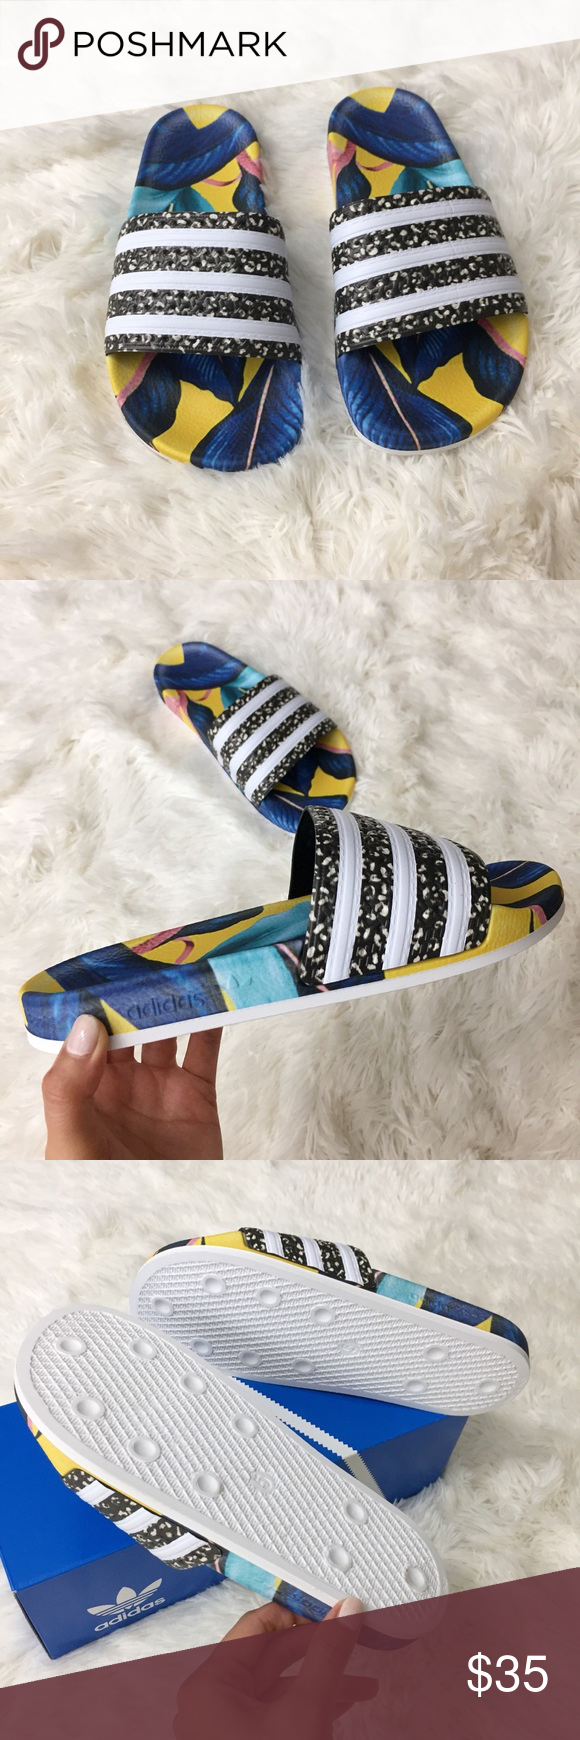 b9e9b495ea5b Adidas Tropical Adilette Slides 🌴 Adidas Adilette Slides •New with Tags  and Box •Size